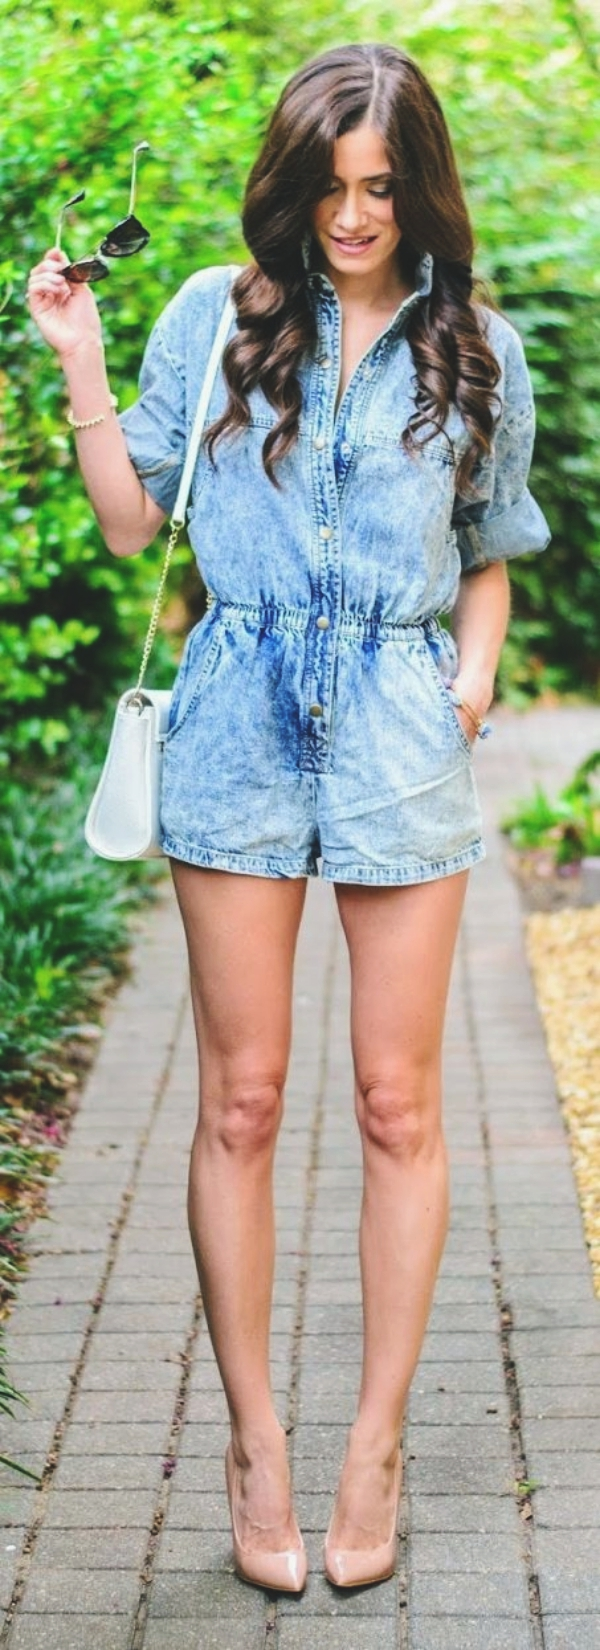 Cute Summer Outfits to Copy39